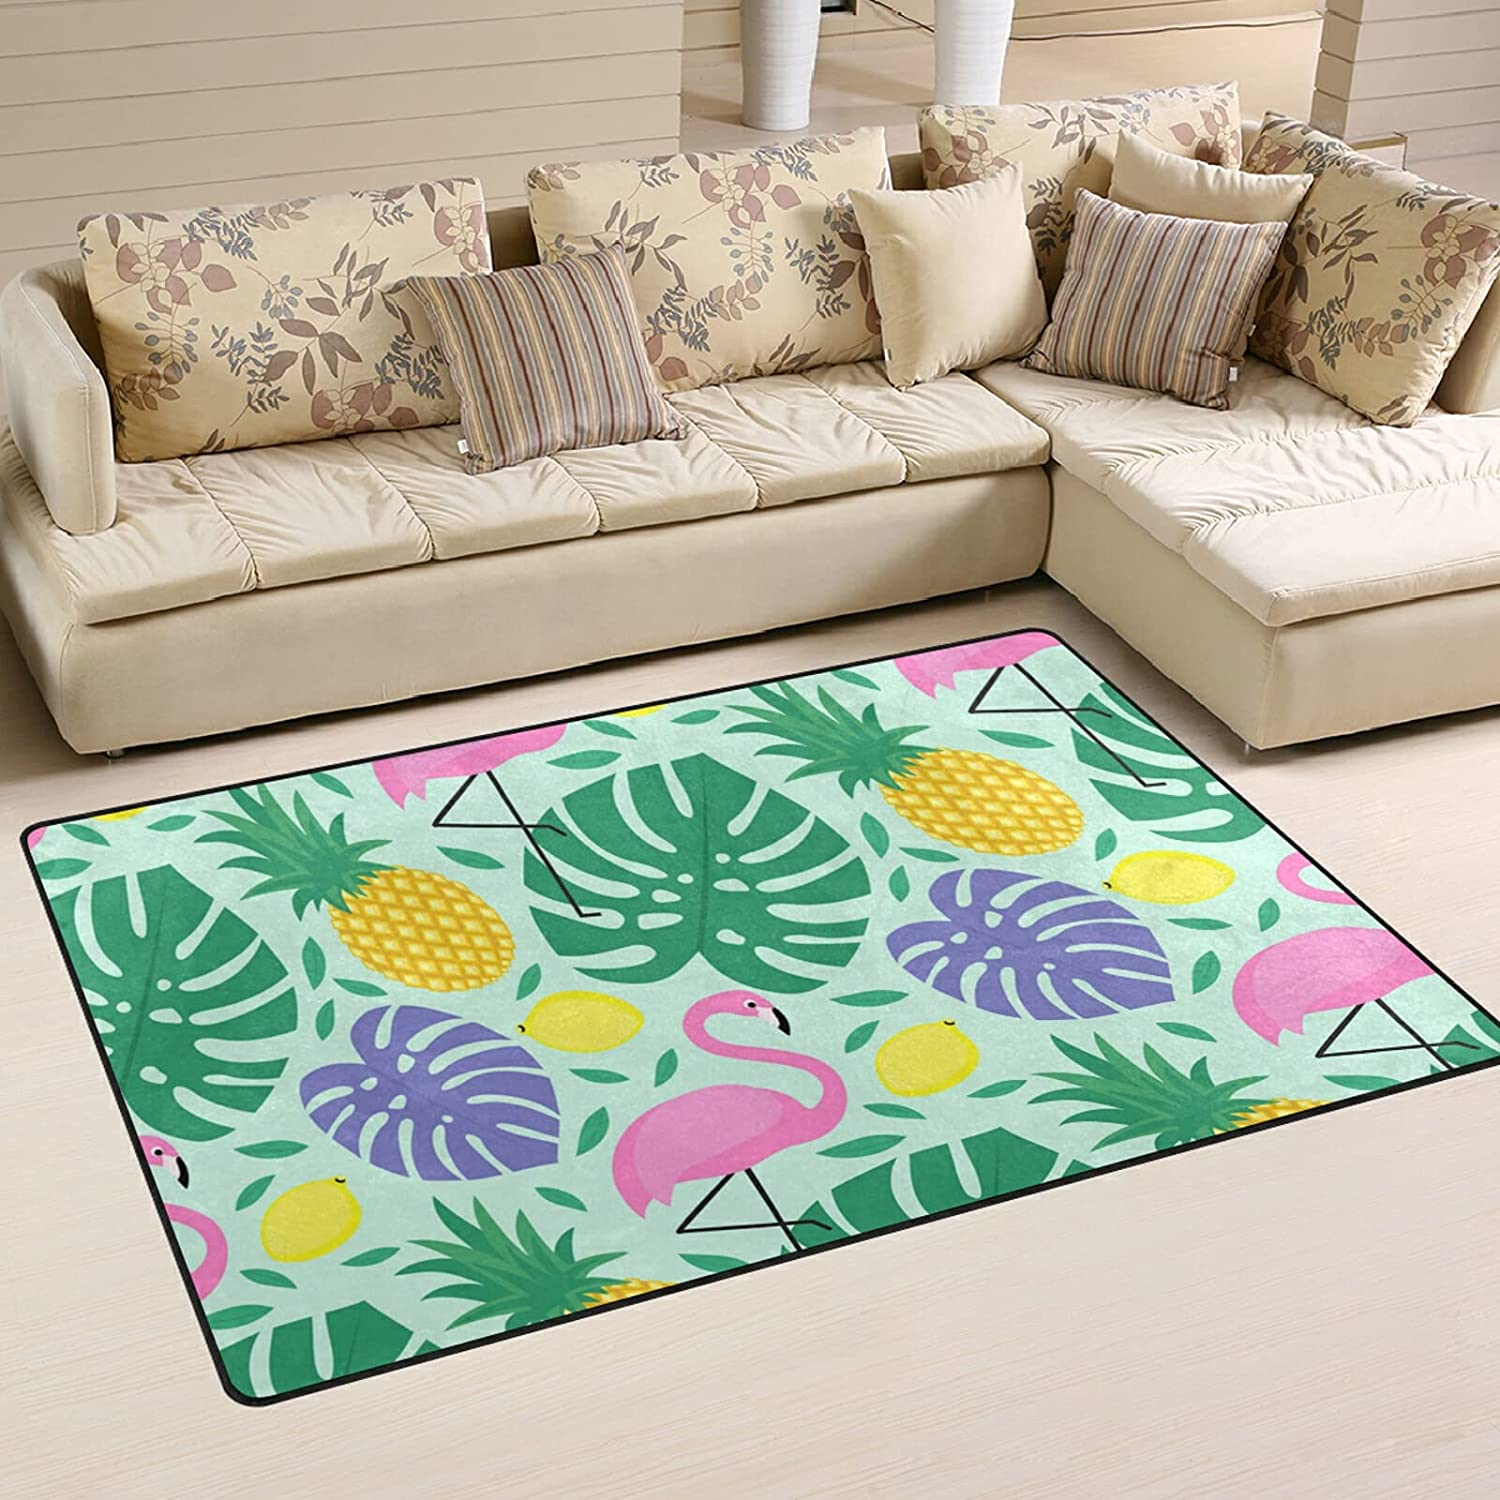 Flamingo Quantity limited Pineapple Cheap super special price Lemons Large Soft Playmat Area Nursery Rugs R